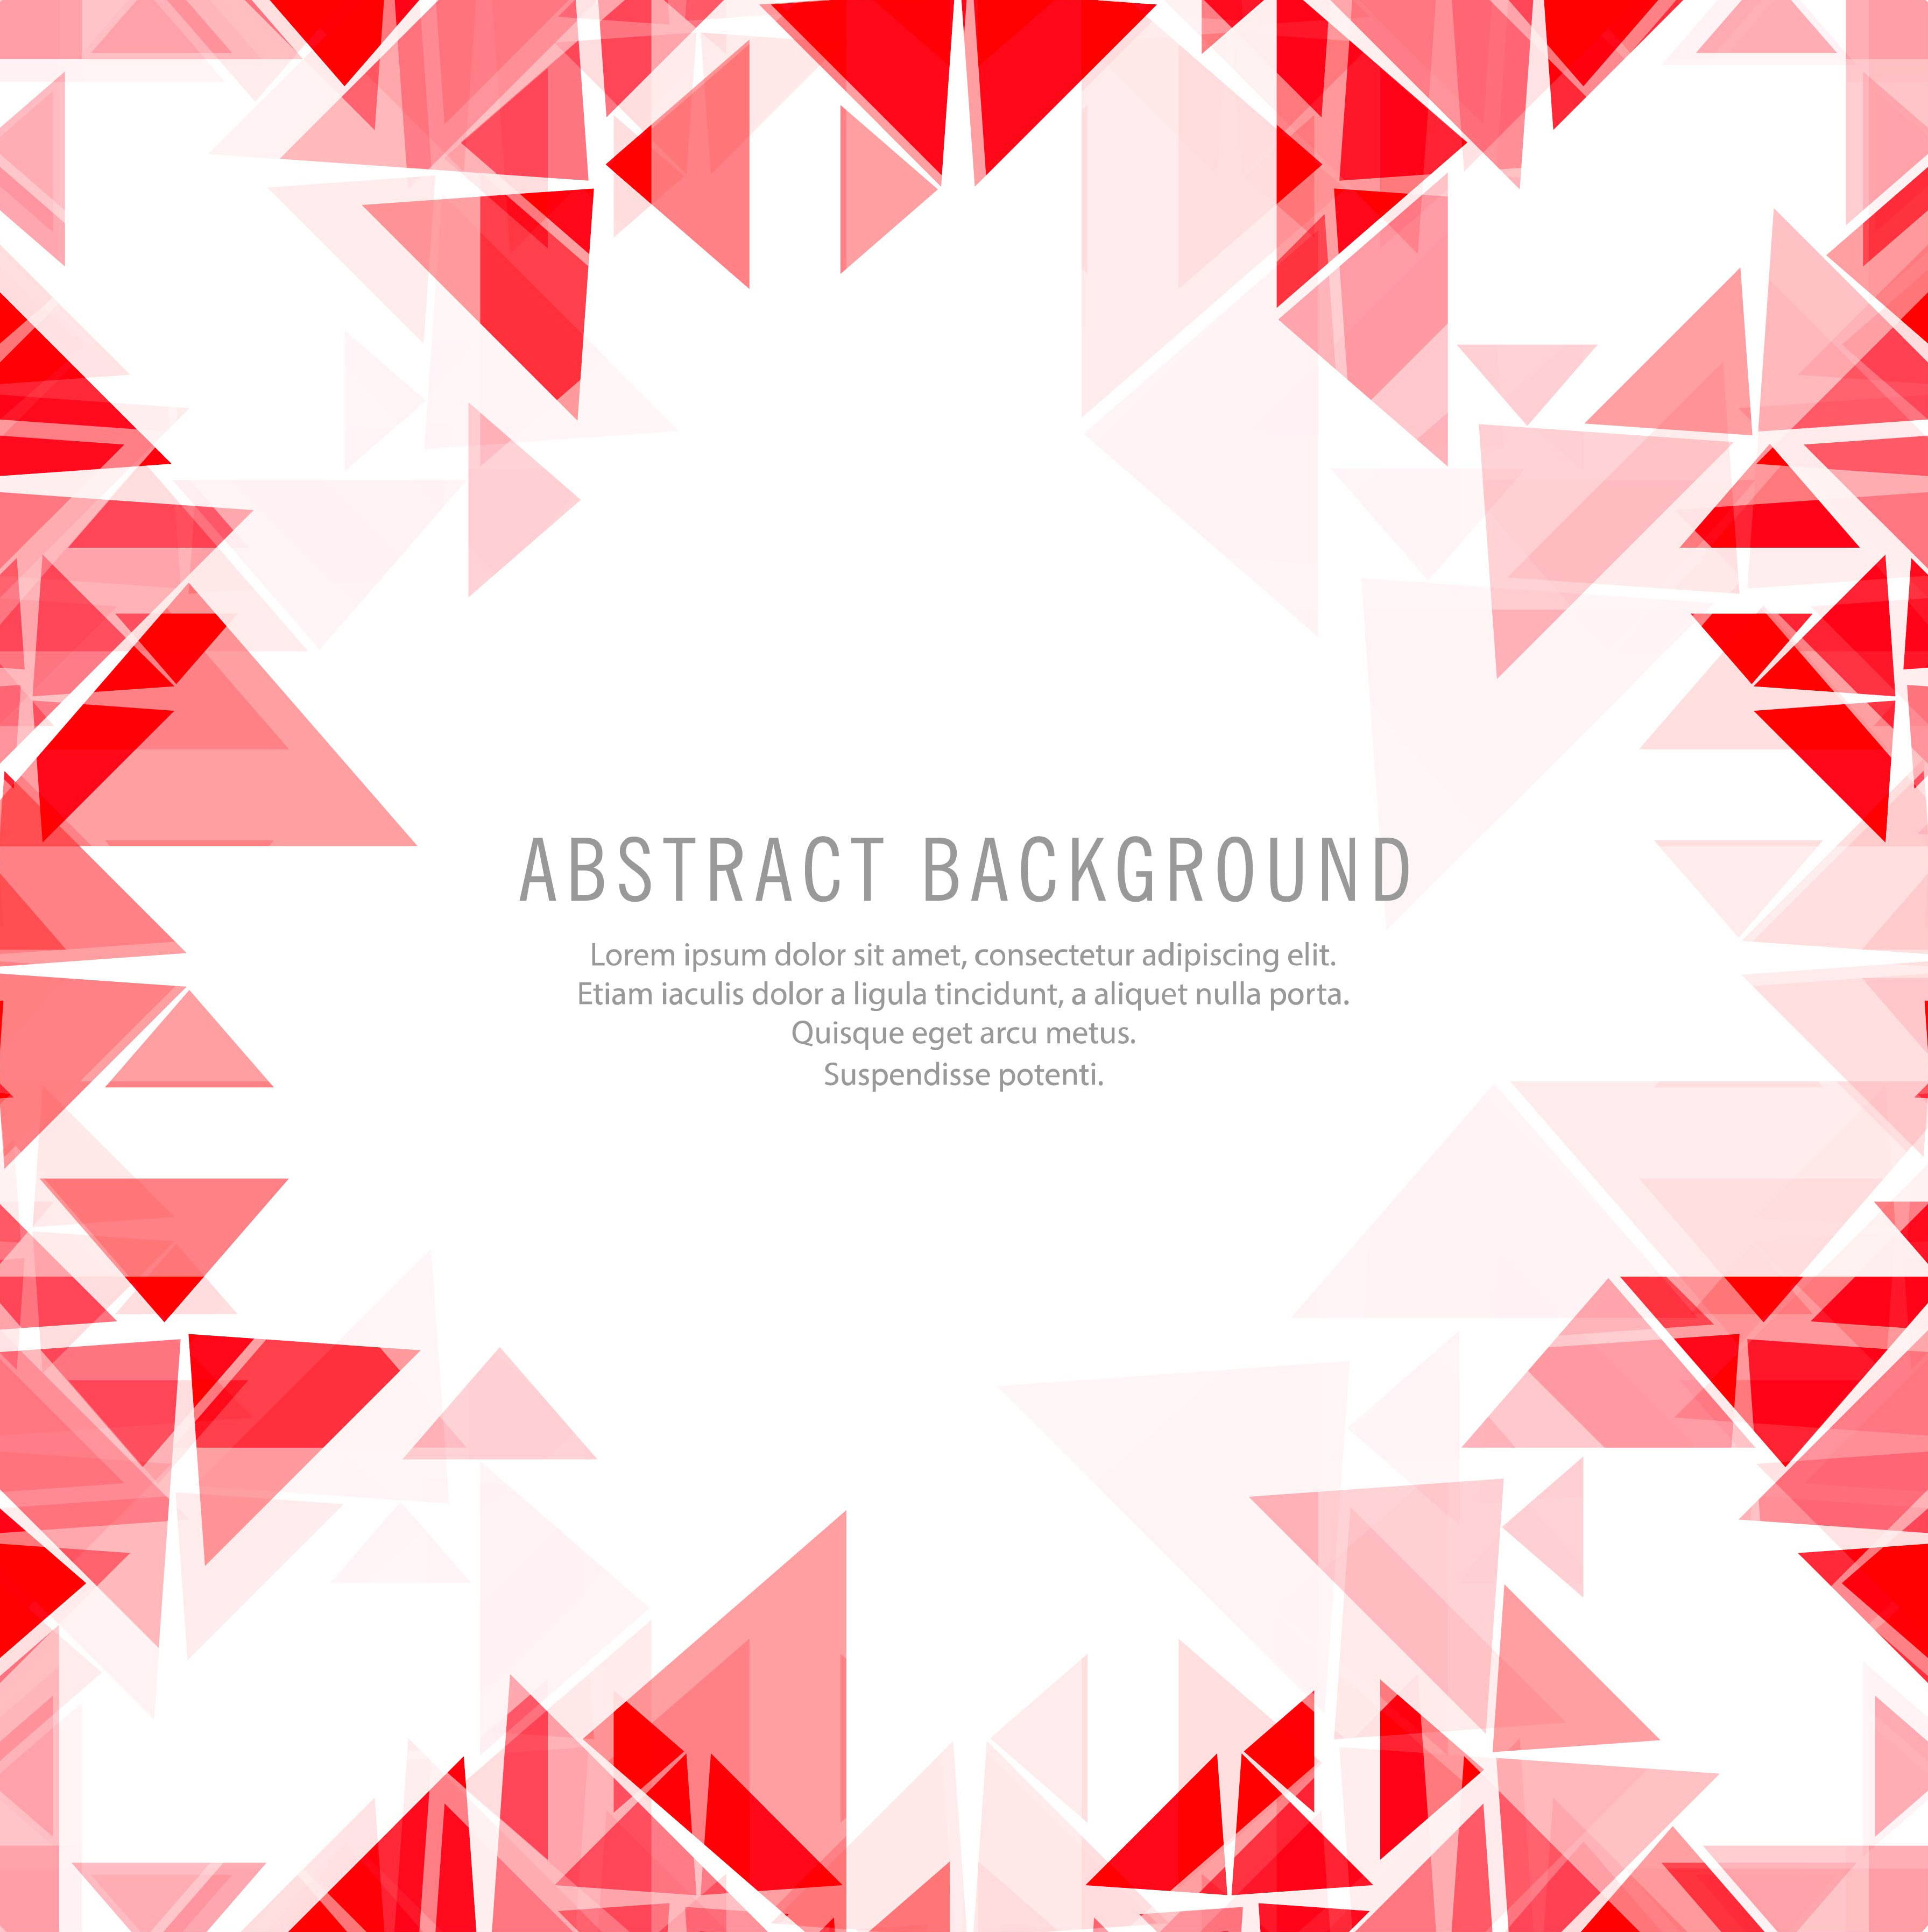 elegant red polygonal background download free vectors clipart graphics vector art elegant red polygonal background